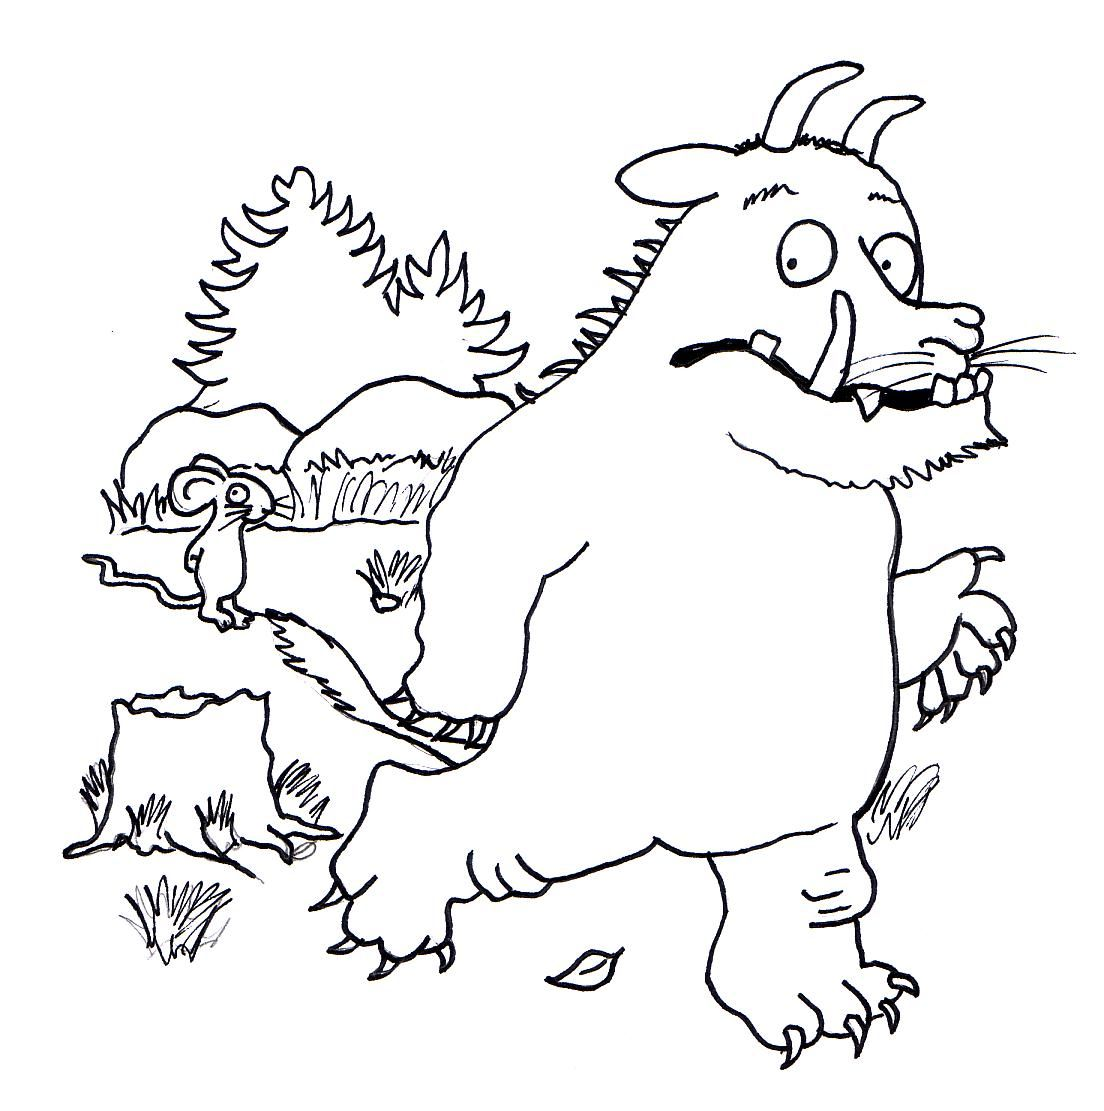 The gruffalo colouring pages to print - Maximonsters Inkleurprenten Google Zoeken